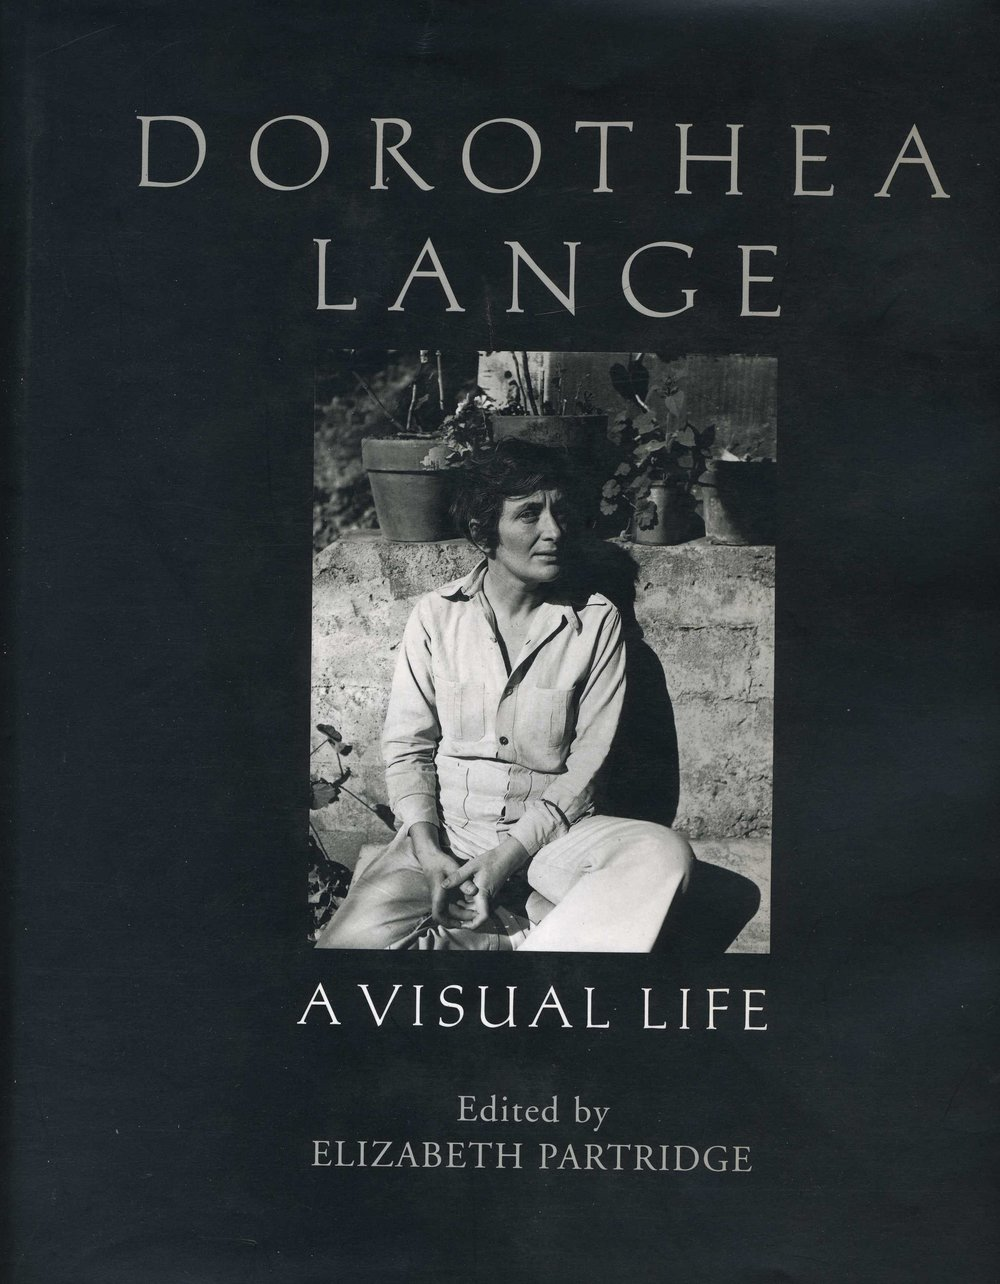 Dorothea Lange: A Visual Life  - This chronicle of the life and work of Dorothea Lange (1895-1965) richly portrays one of America's most celebrated photographers. The woman behind the camera is revealed in excerpts from her letters, journal entries, in the words of seven essayists who together develop a full vision of Lange as artist, woman, mother, and activist, and in more than 80 photos.Essays include Roger Daniels (History/Univ. of Chicago) look at Lange's work documenting Japanese Americans interned by the War Relocation Authority during WW II, and an incisive essay by Sally Stein (Art History/Univ. of California, Irvine) discusses Lange's fascination with bodily depictions (she had been crippled by childhood polio and was dogged by lifelong physical infirmities).Smithsonian Institution Press 1994, Out of Print